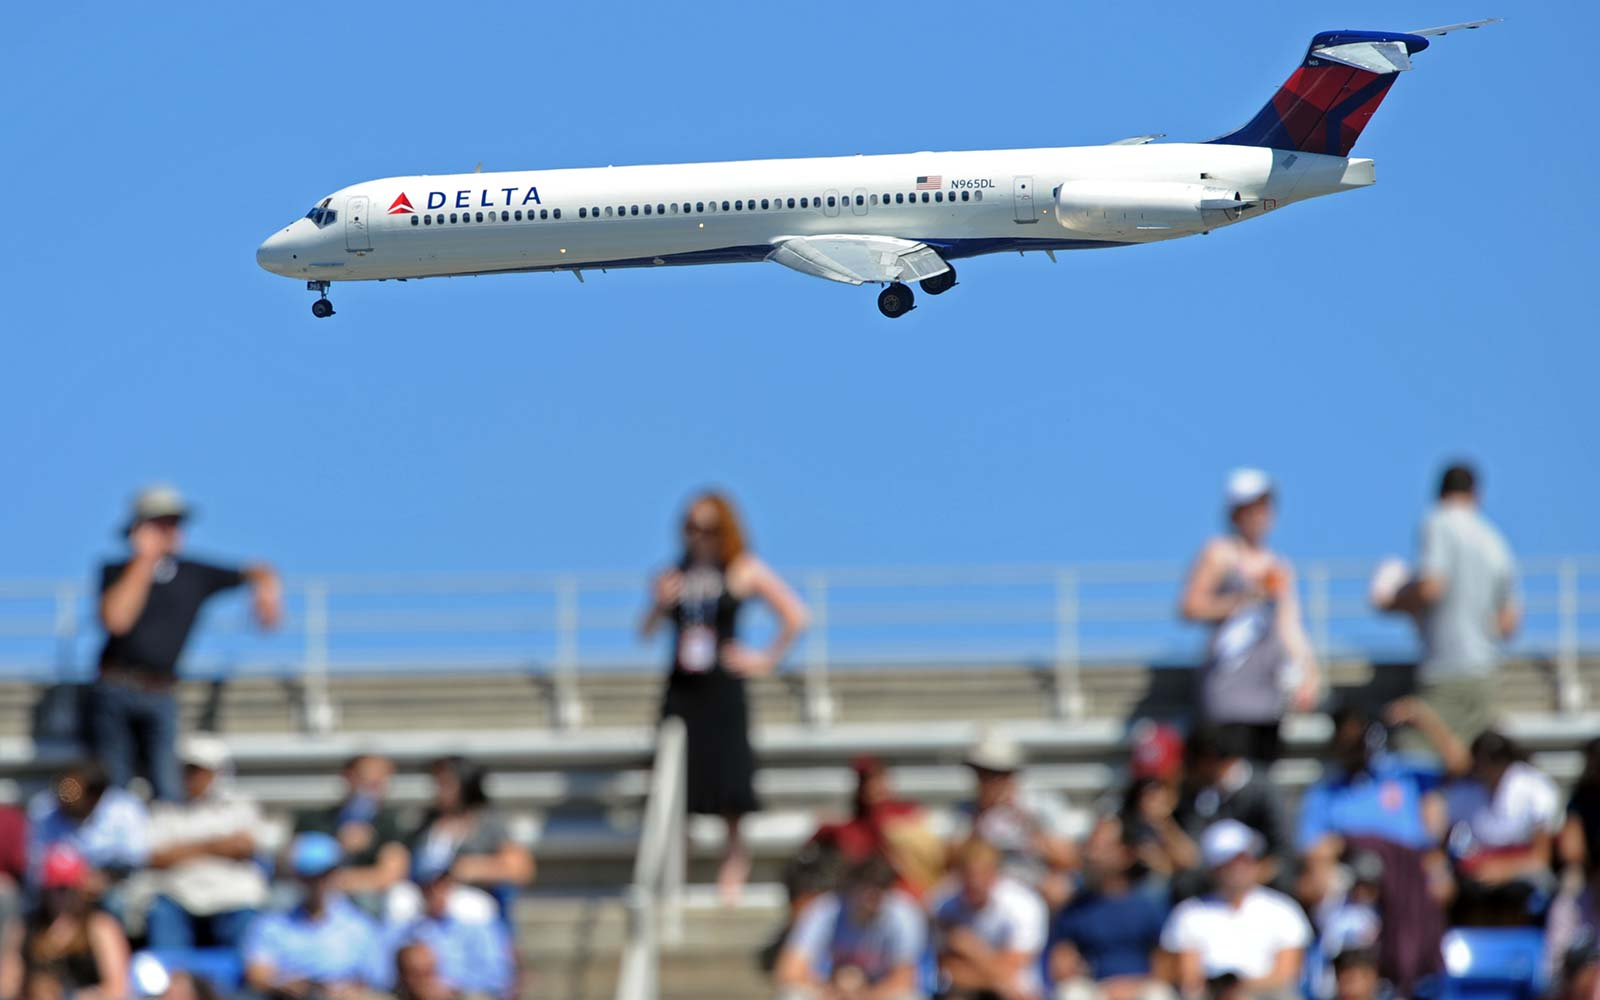 A Delta jet makes its approach to nearby La Guardia Airport past the Arthur Ashe Stadium during the US Open semifinal match between Rafael Nadal of Spain and Mikhail Youzhny of Russia in New York